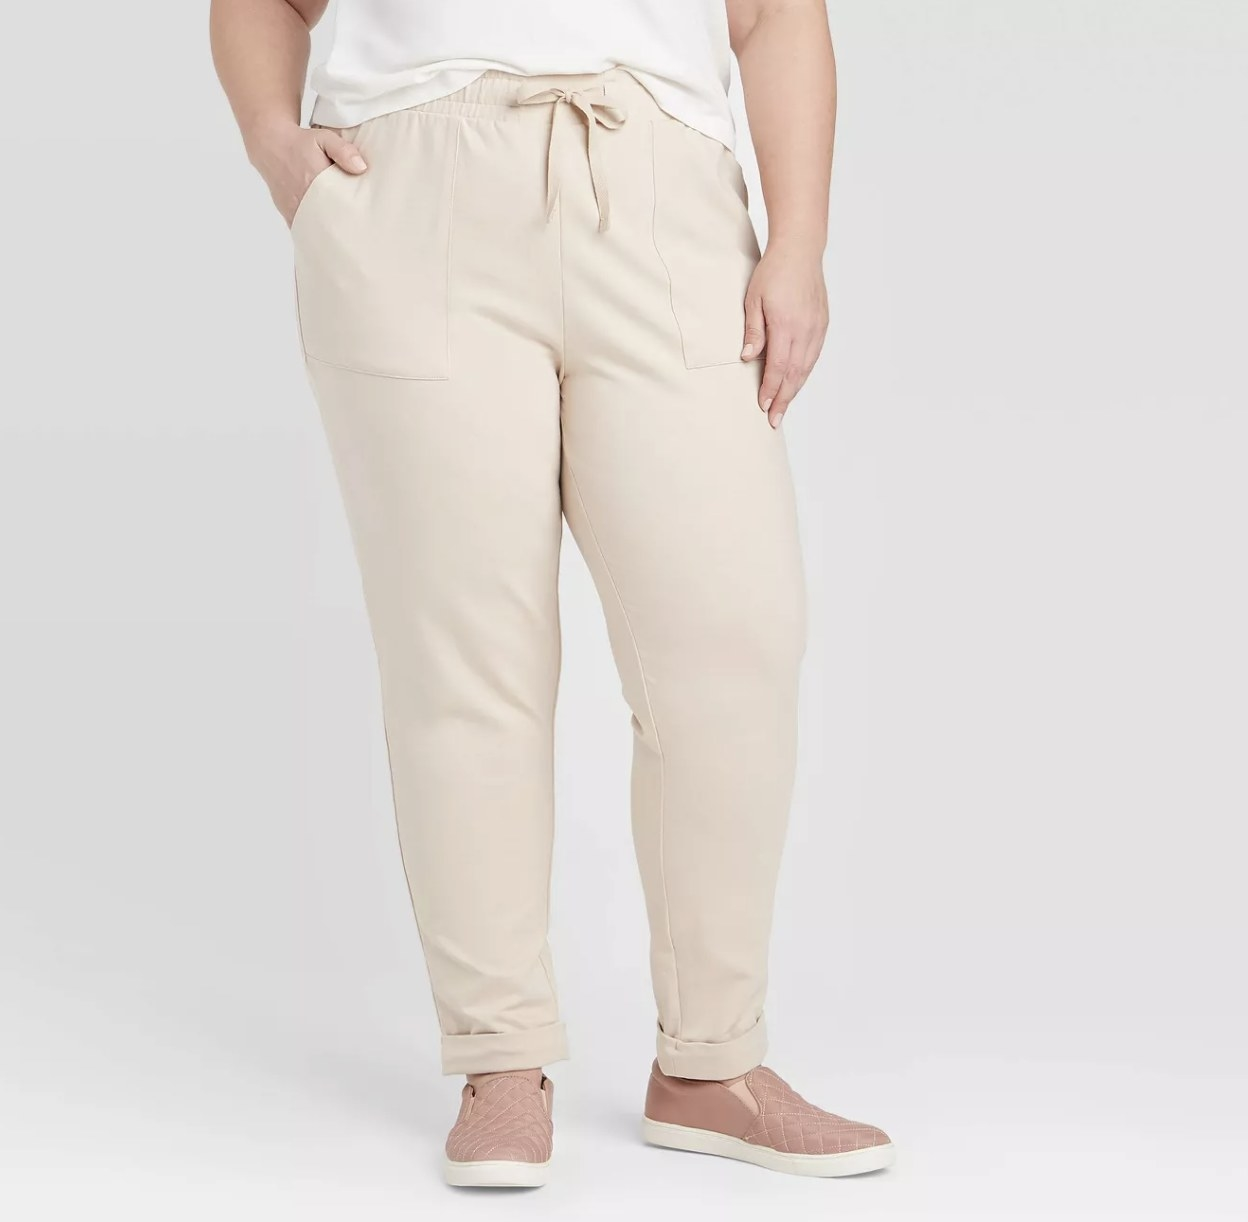 Model wearing the cream joggers